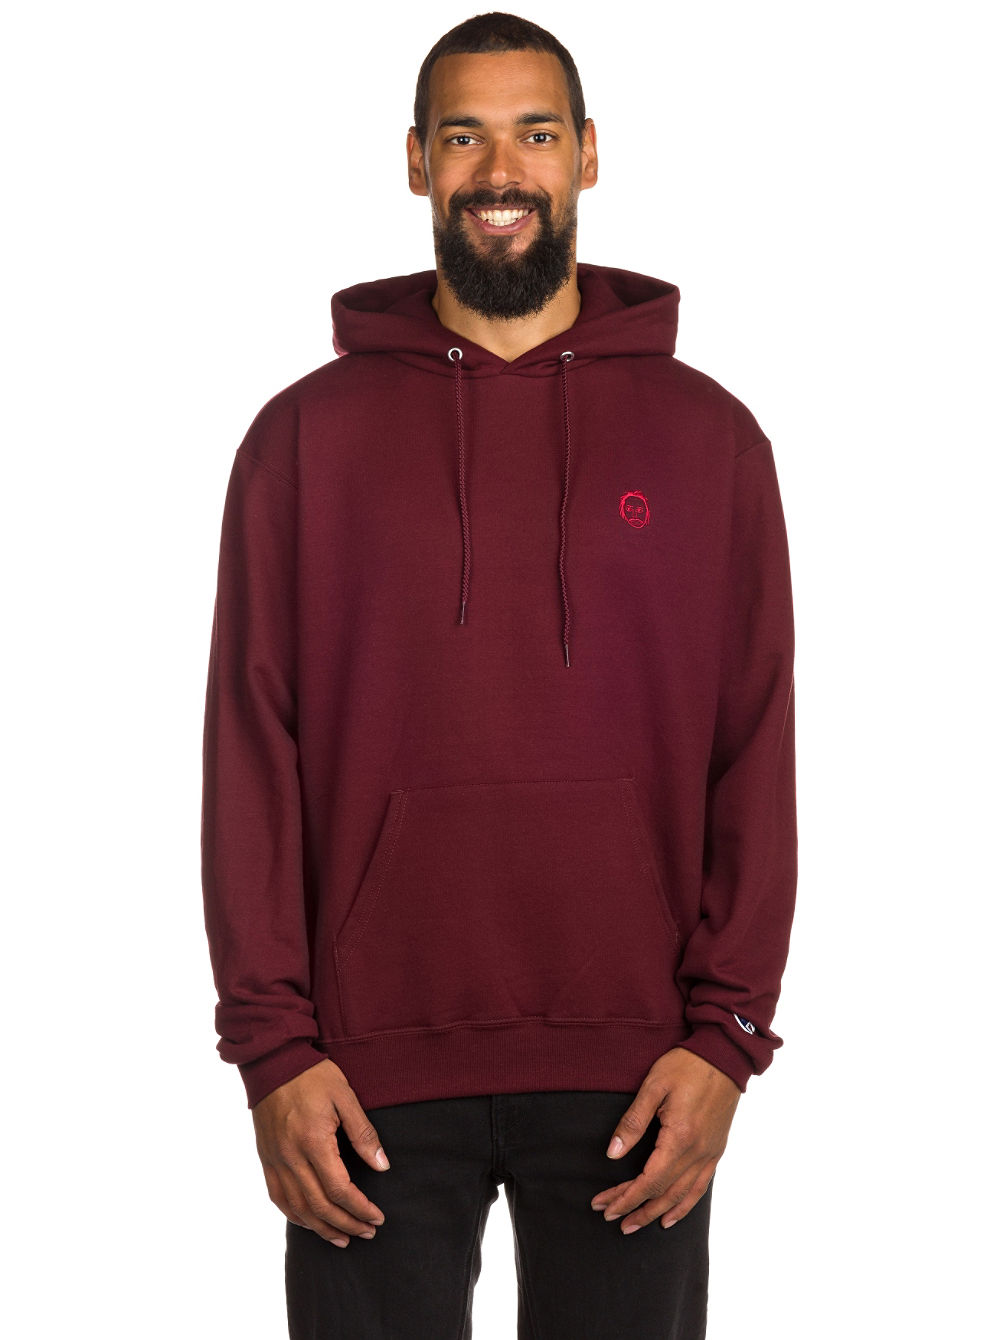 Buy Earl Sweatshirt Champion S700 Pullover Fleece Hoodie ...